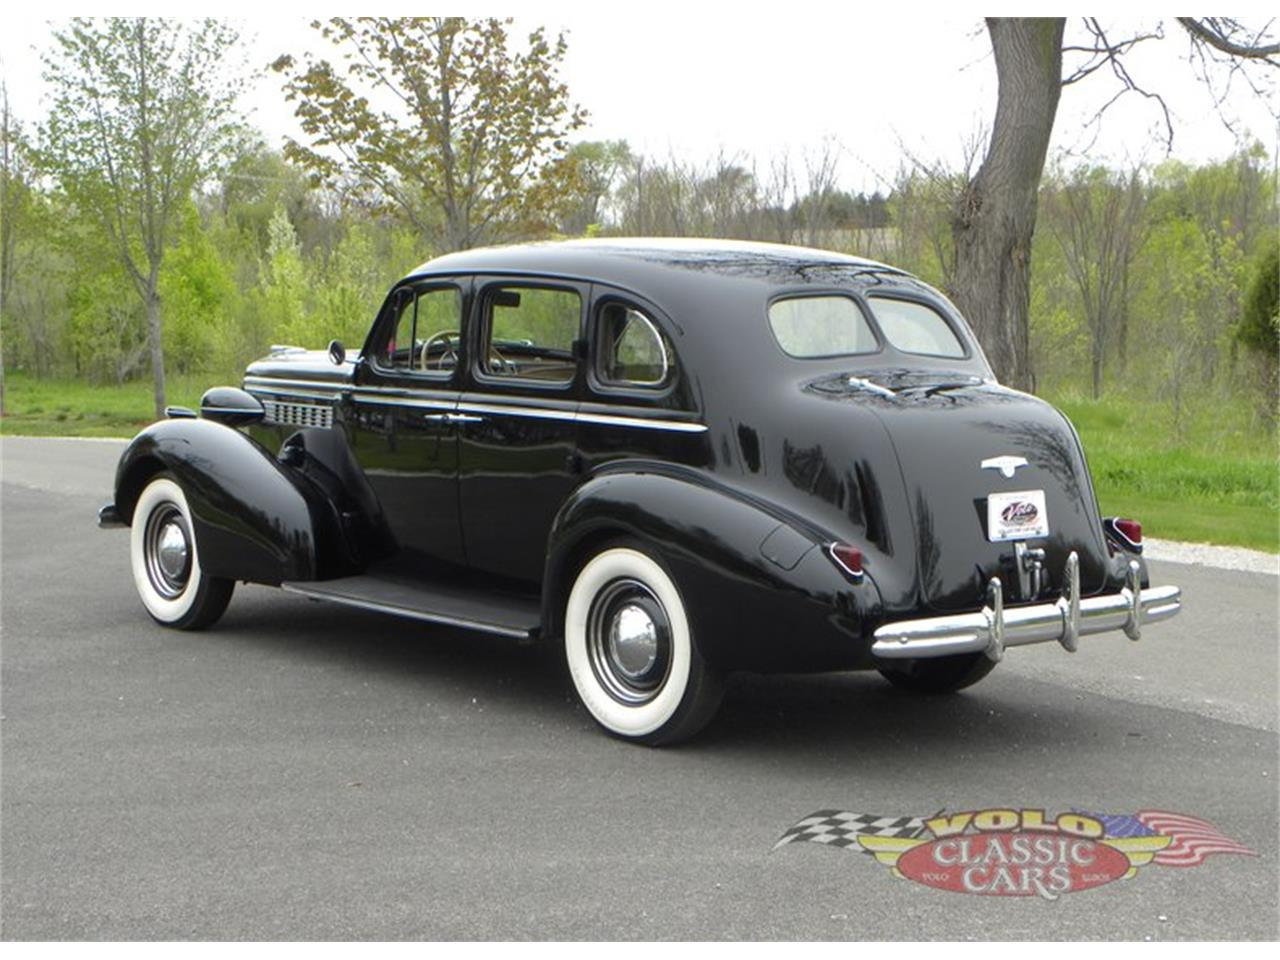 Large Picture of '38 Buick Special - $26,500.00 - Q46K